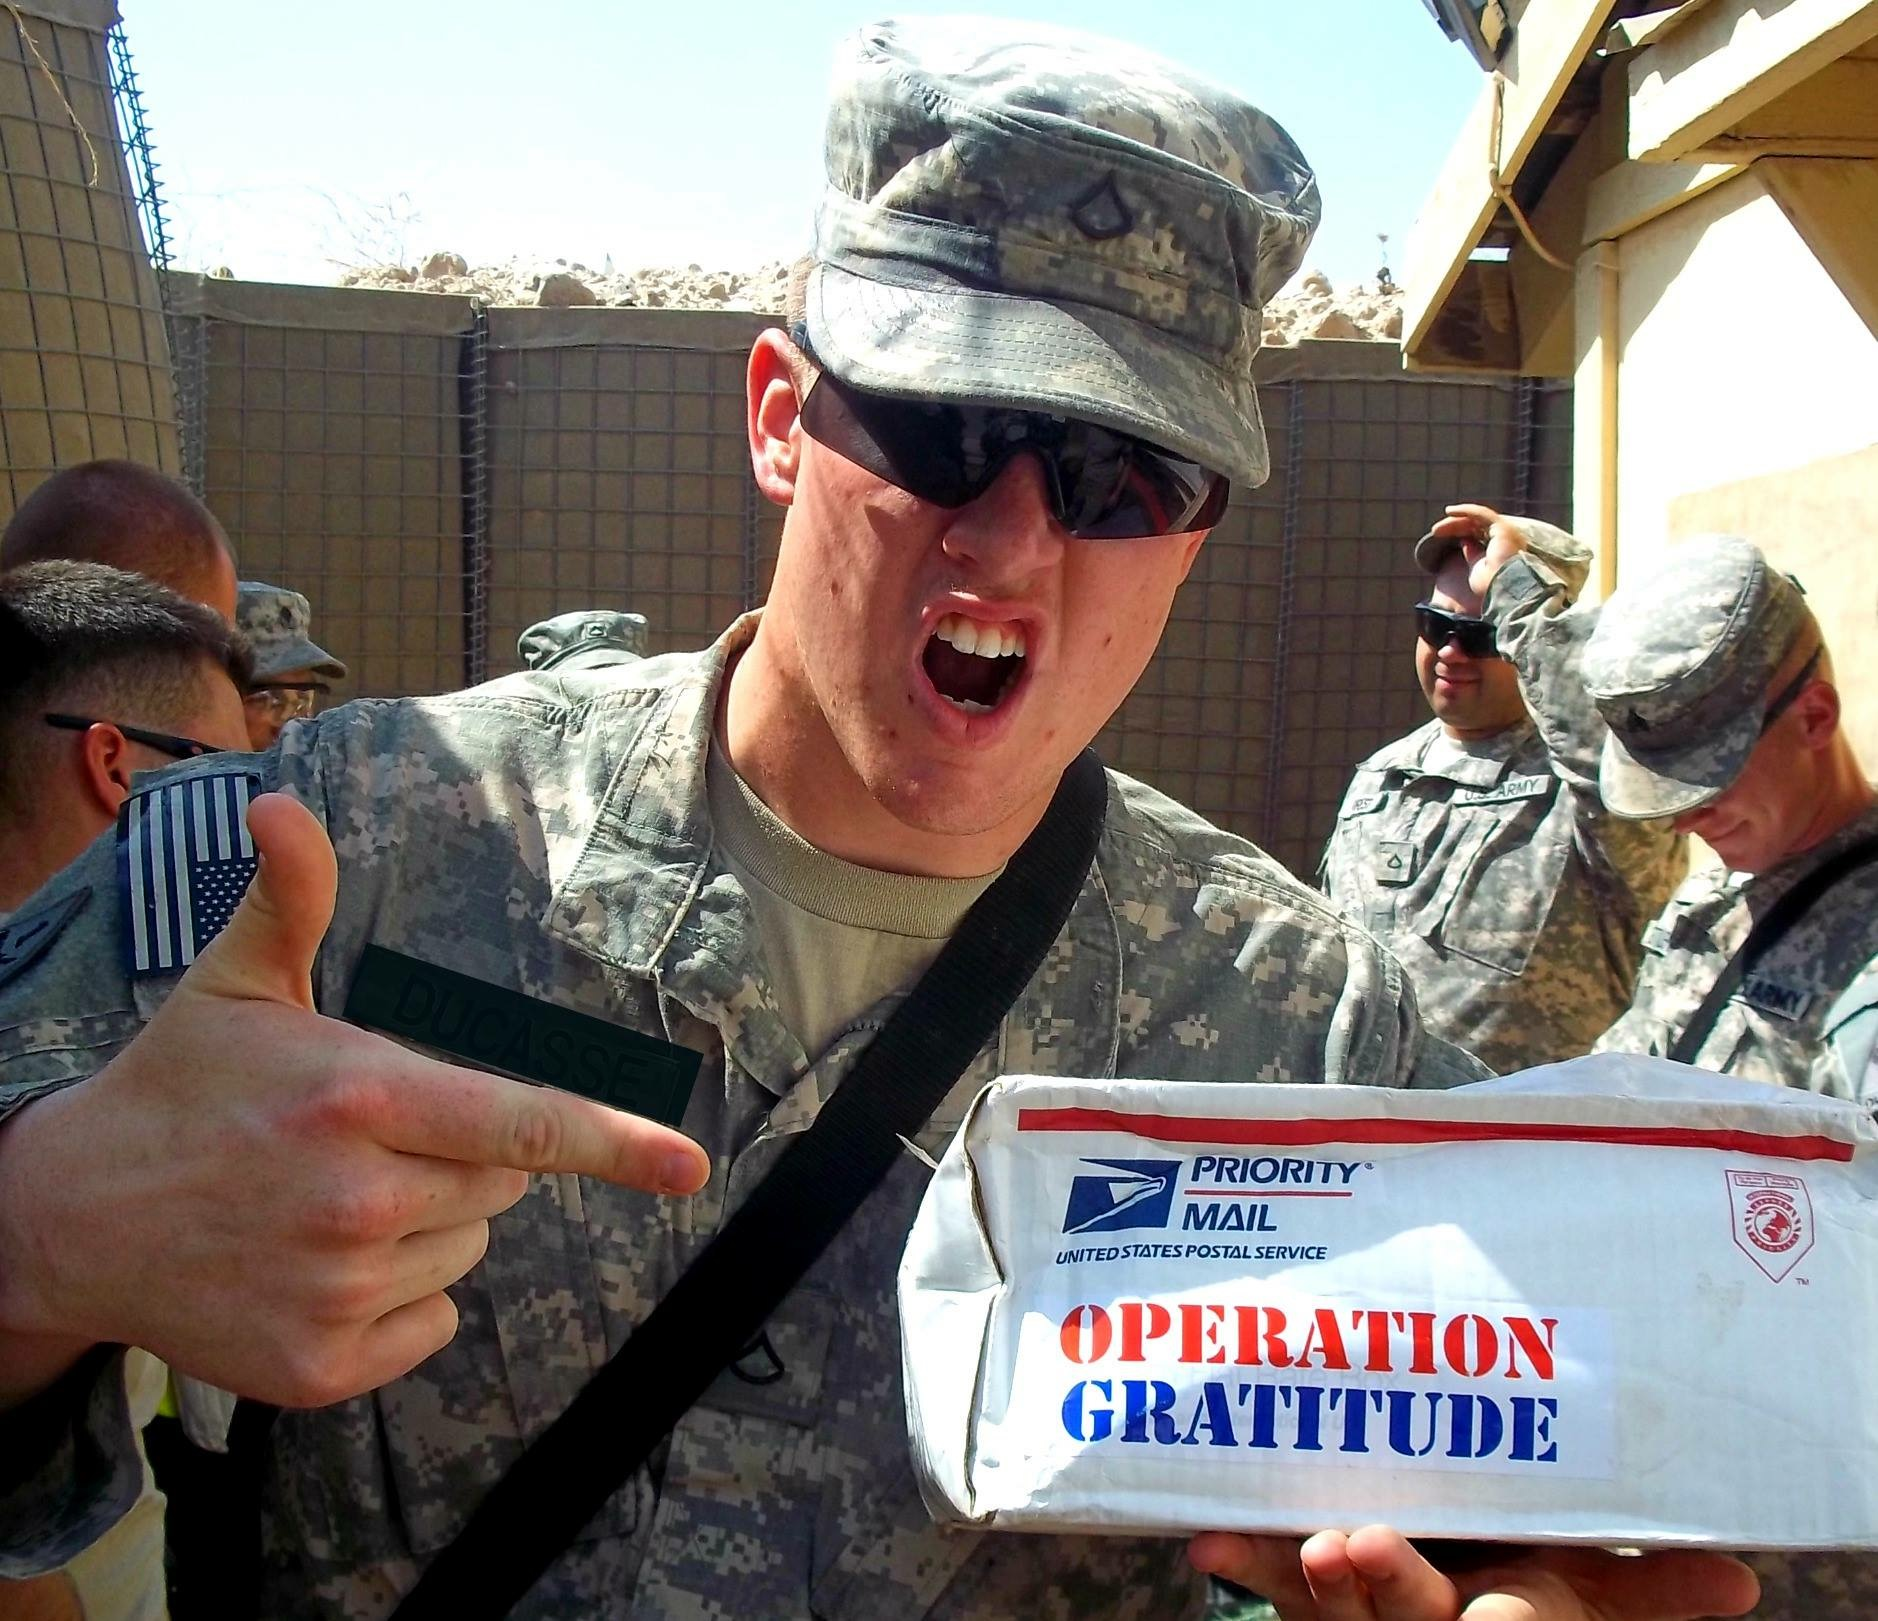 Local dentist offices sending candy to troops